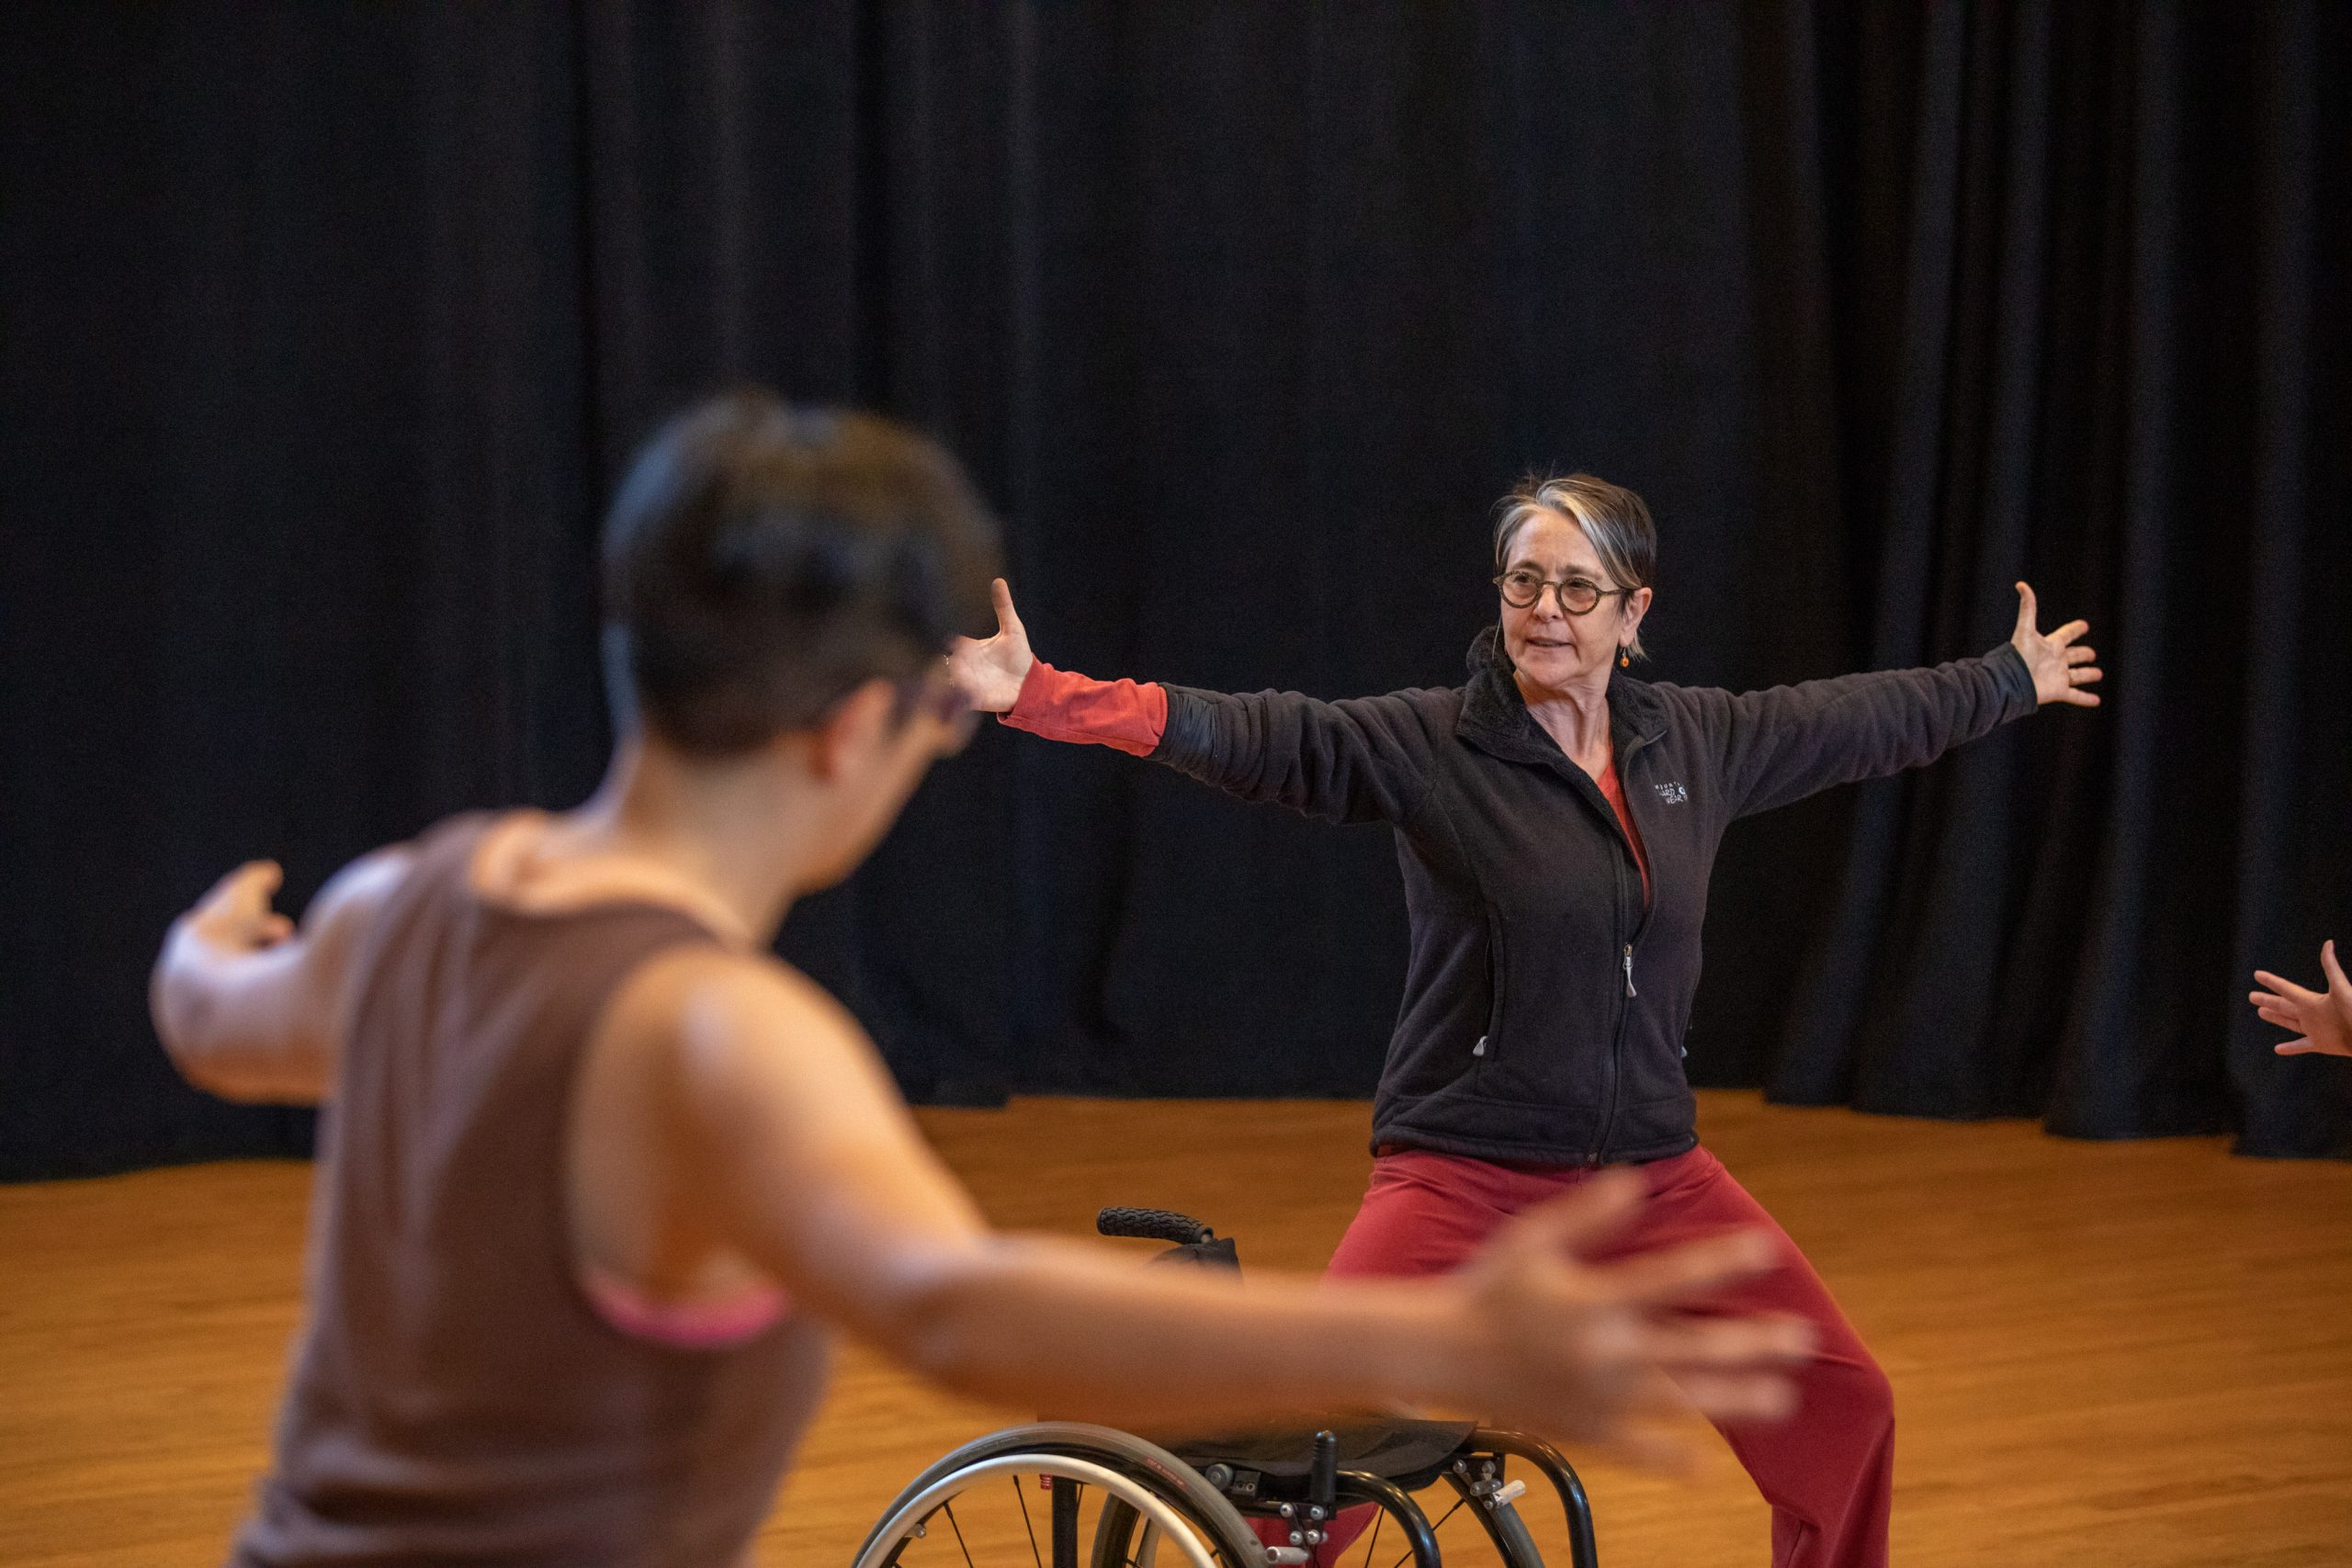 Victoria Marks demonstrates a movement during the 2019 Dancing Disability Workshop. Her arms are outstretched and knees slightly bent.